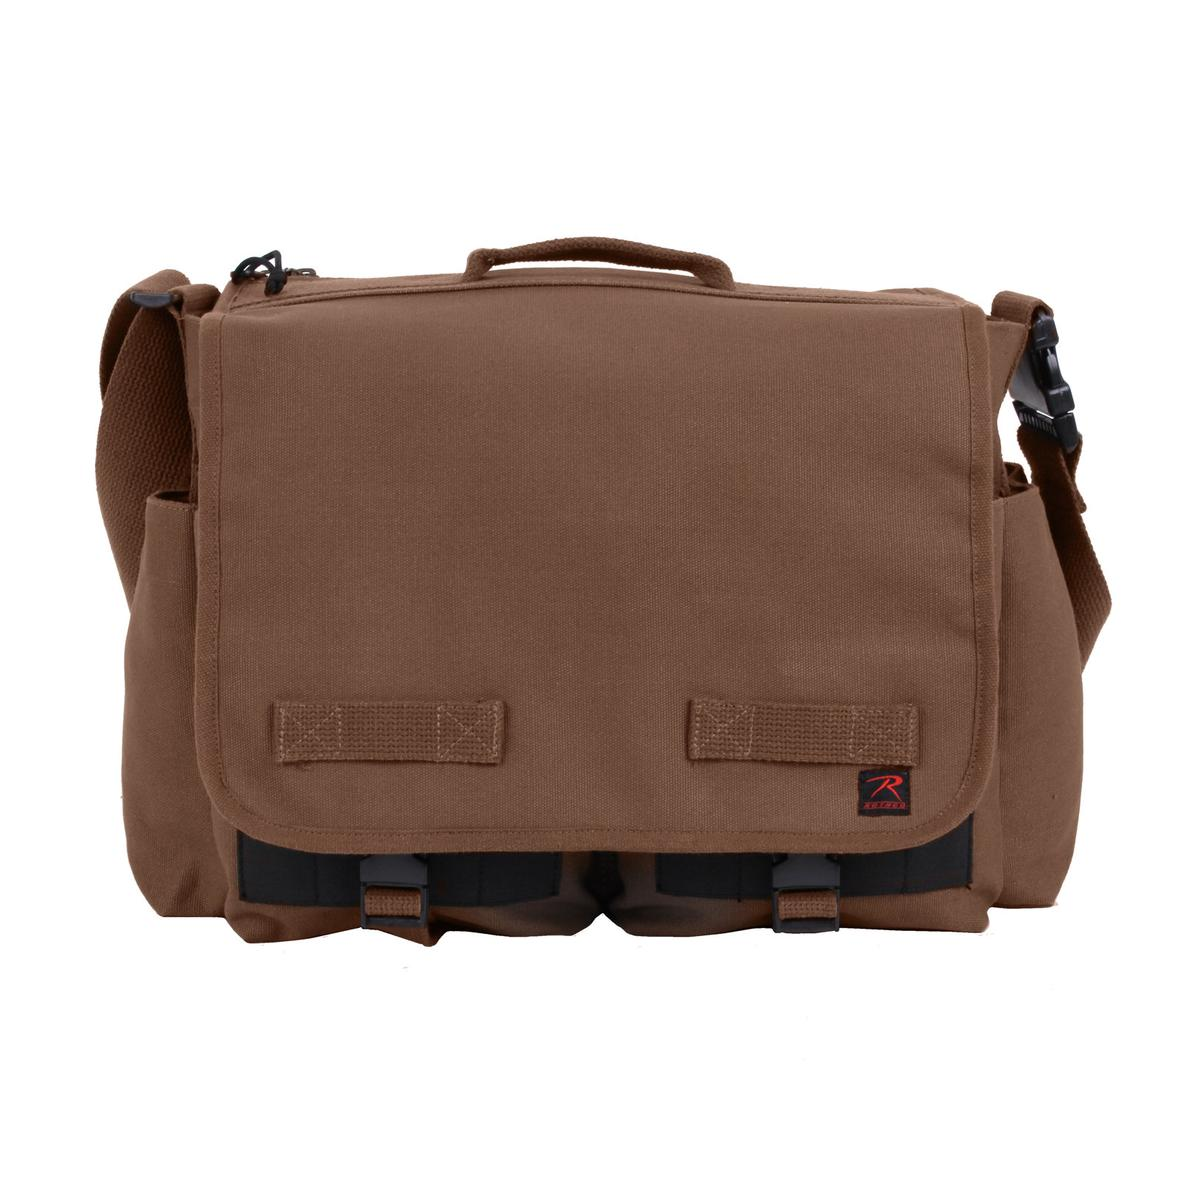 Rothco Concealed Carry Canvas Molle